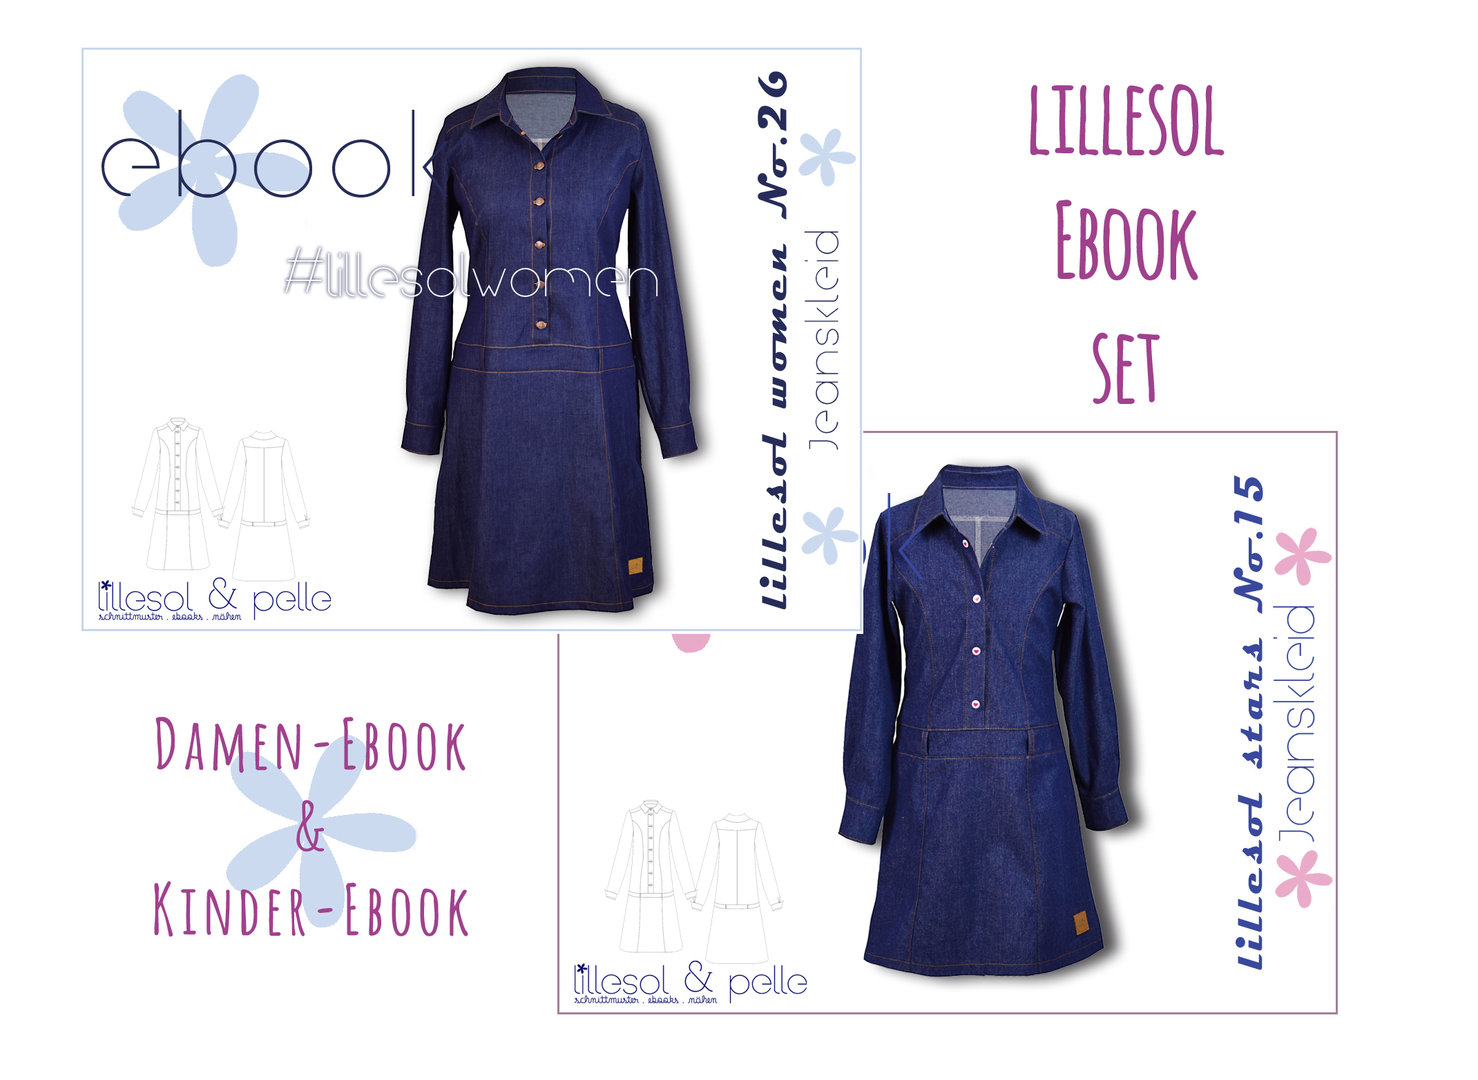 lillesol ebook set stars No. 15 und women No.26